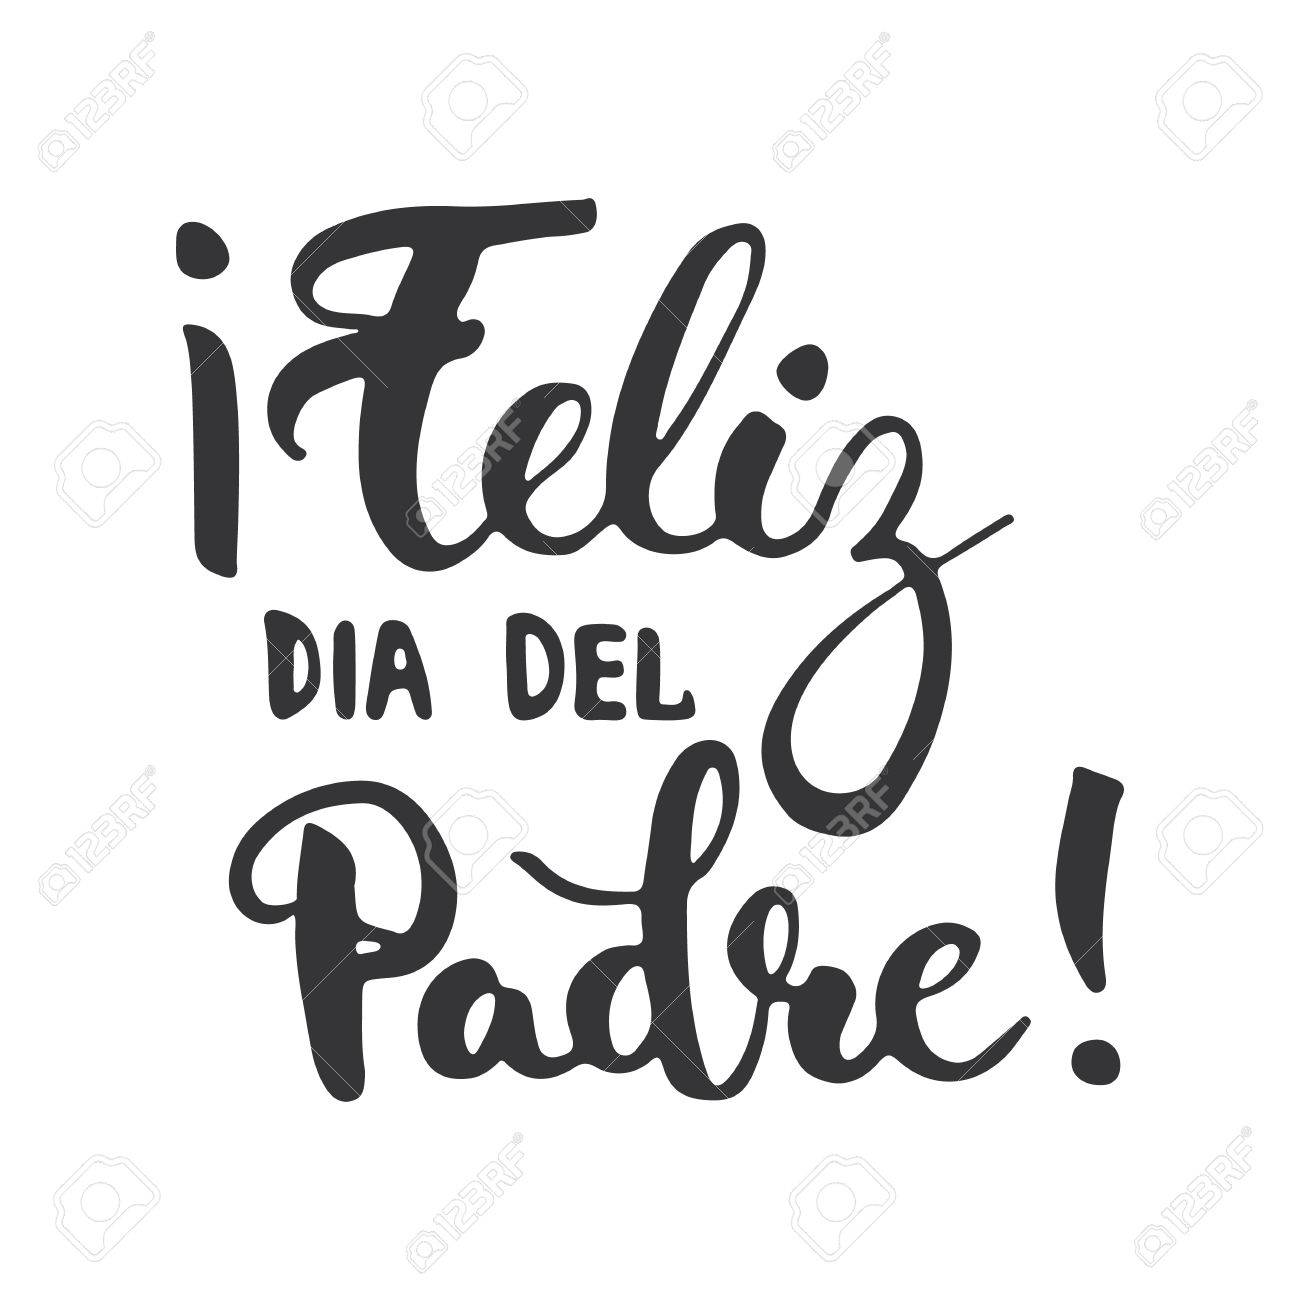 Father's day lettering calligraphy phrase in Spanish Feliz dia del Padre, greeting card isolated on the white background. Illustration for Fathers Day invitations. Dad's day lettering. - 57319665